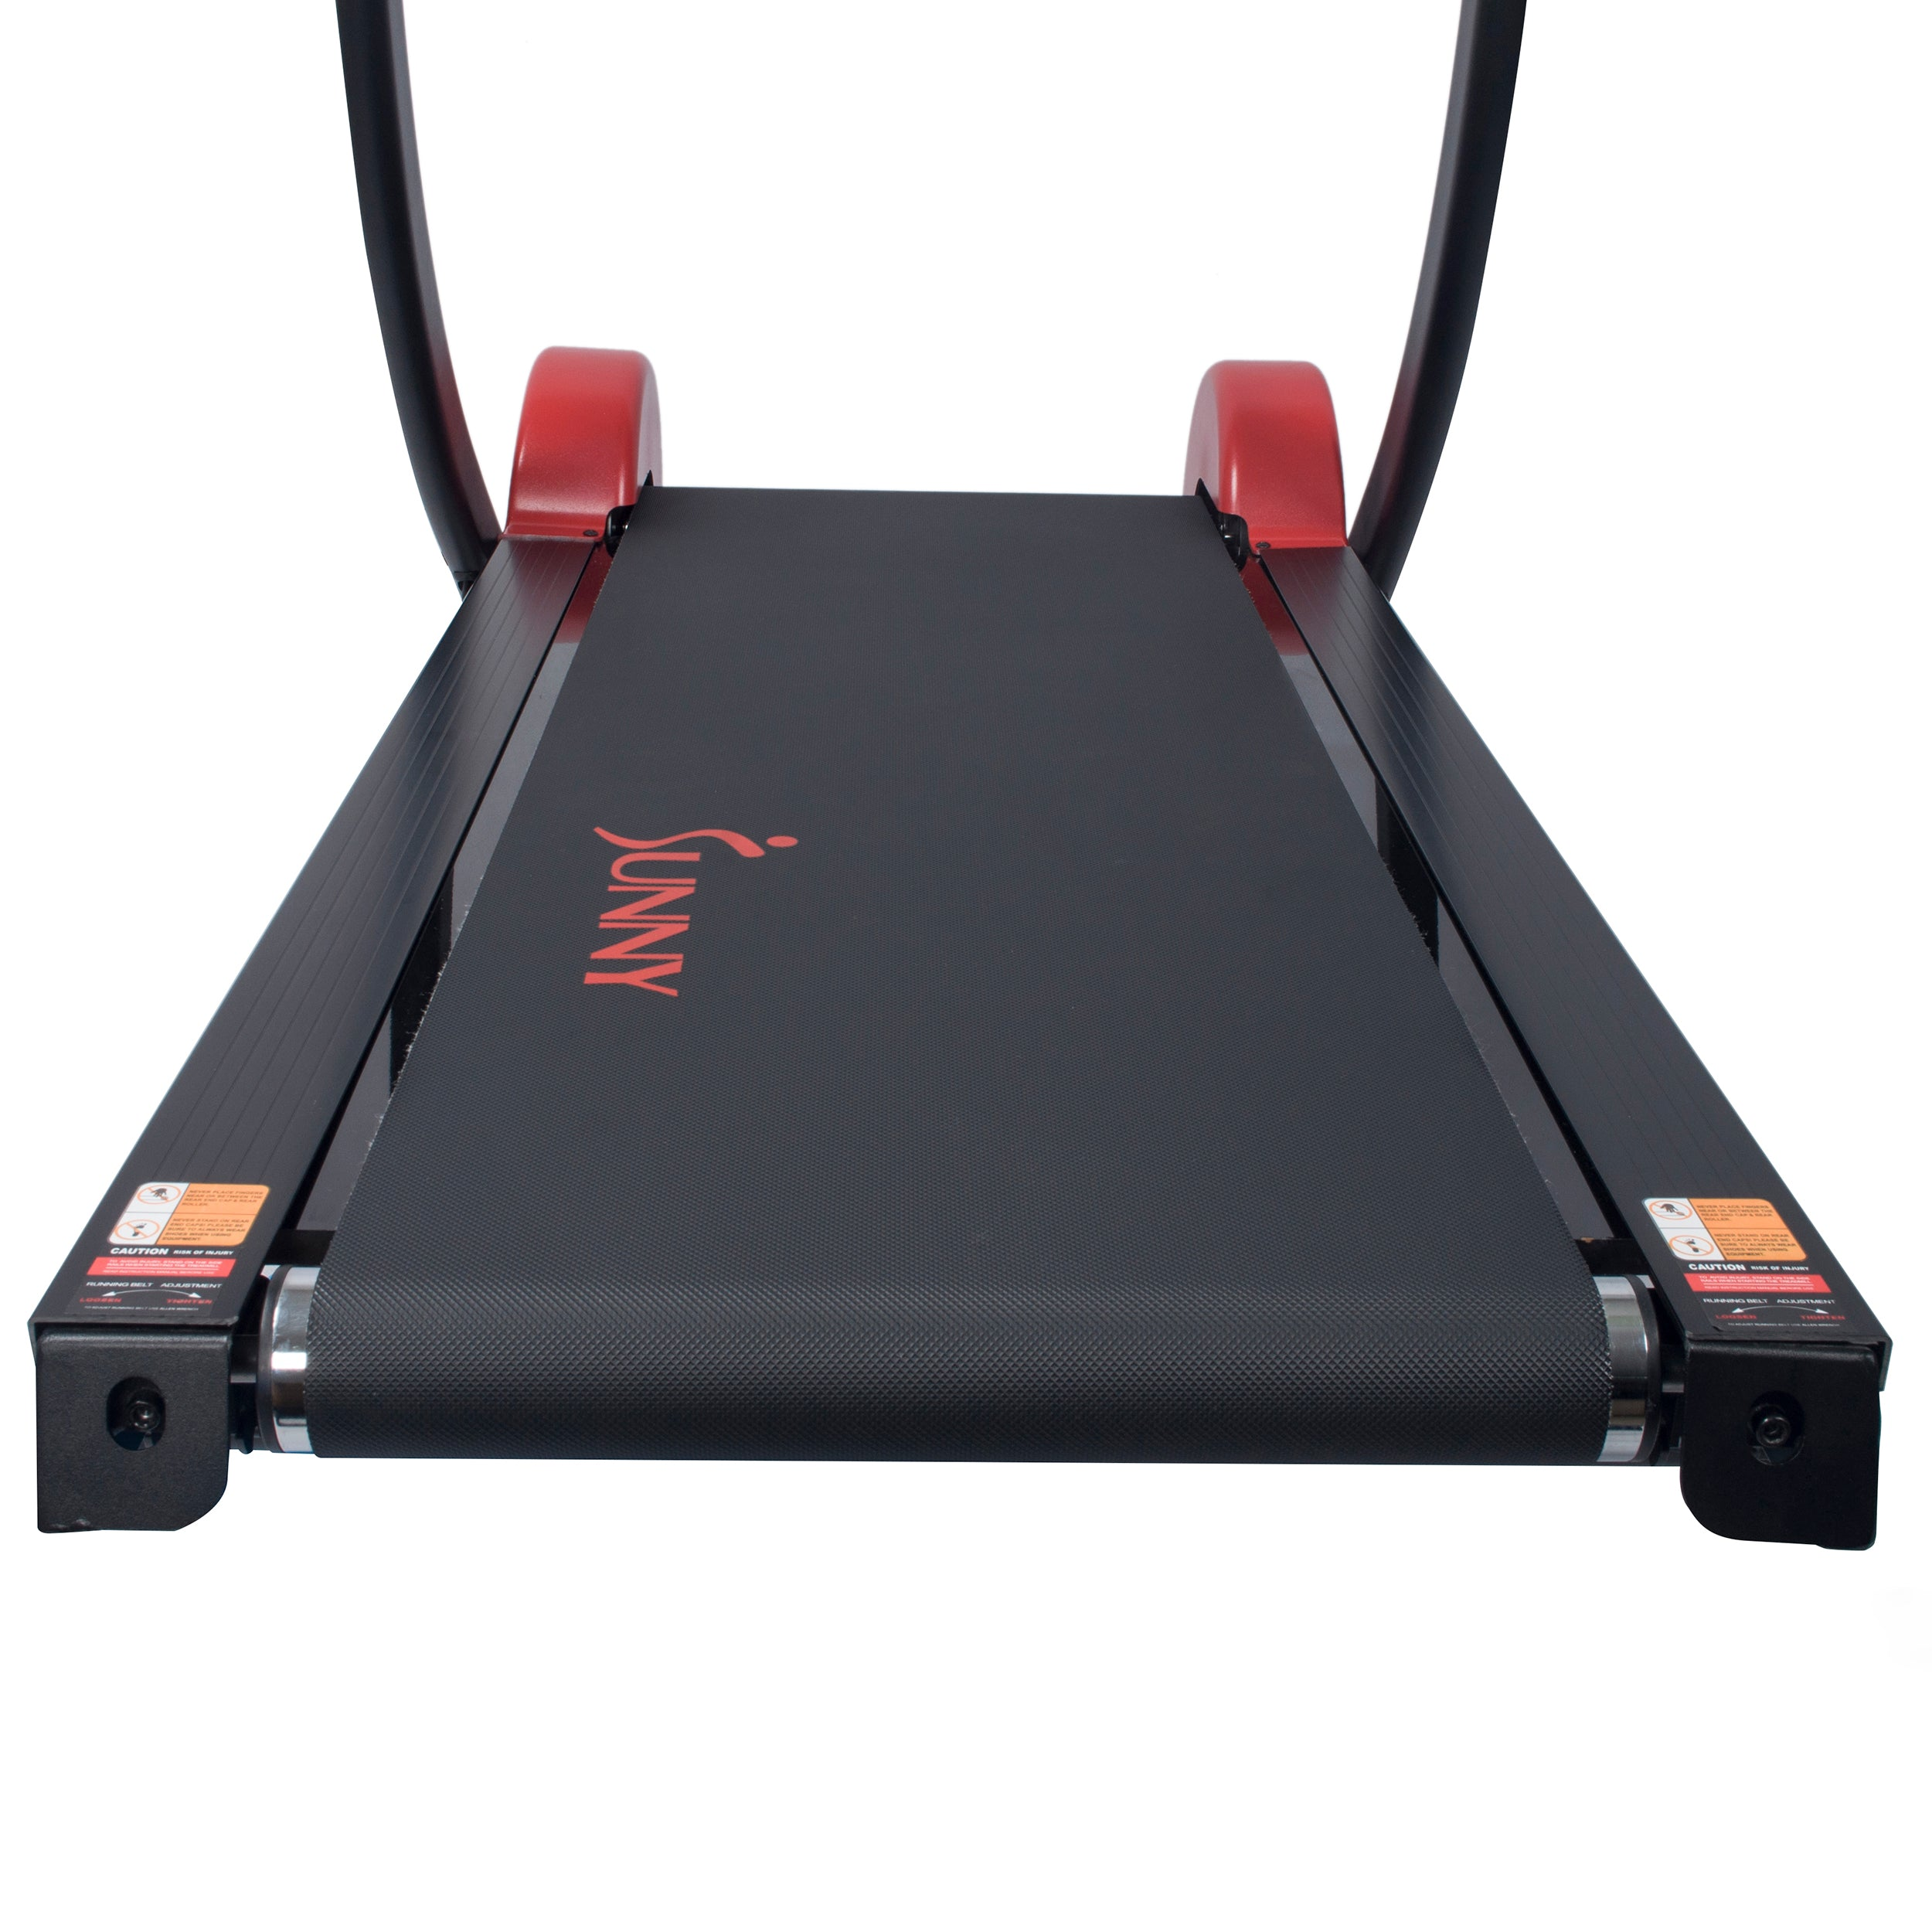 sunny-health-fitness-treadmills-sunny-health-fitness-cardio-trainer-manual-treadmill-adjustable-incline-300+-lbs-SF-T7878-deck